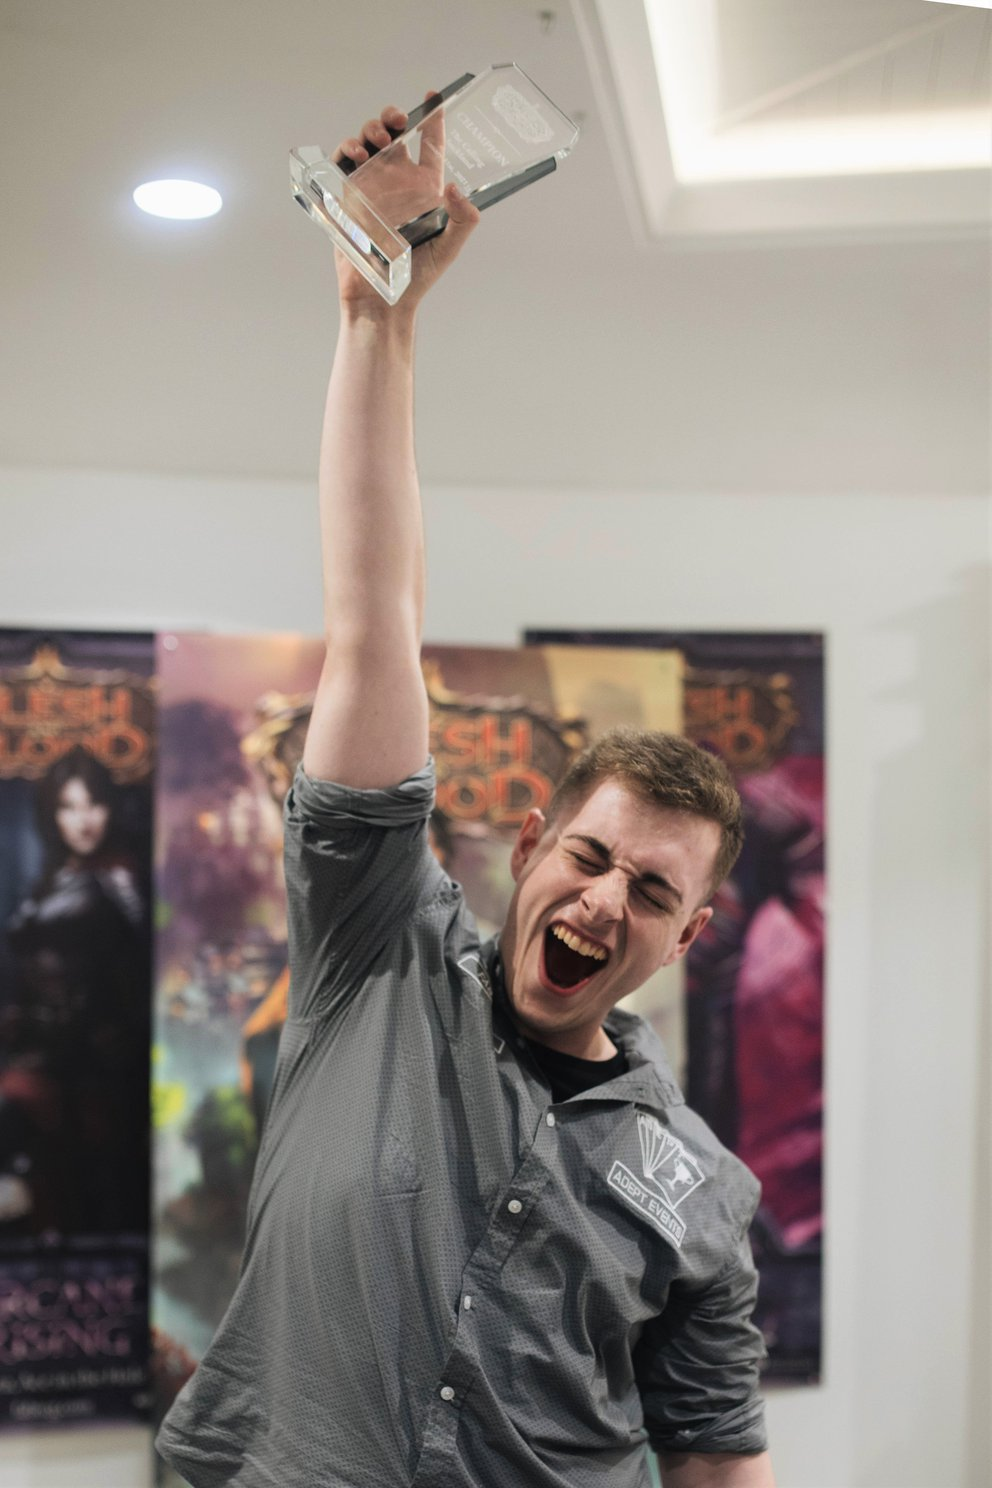 Jacob Pearson, Champion of The Calling Auckland 2021, holds his trophy aloft, cheering